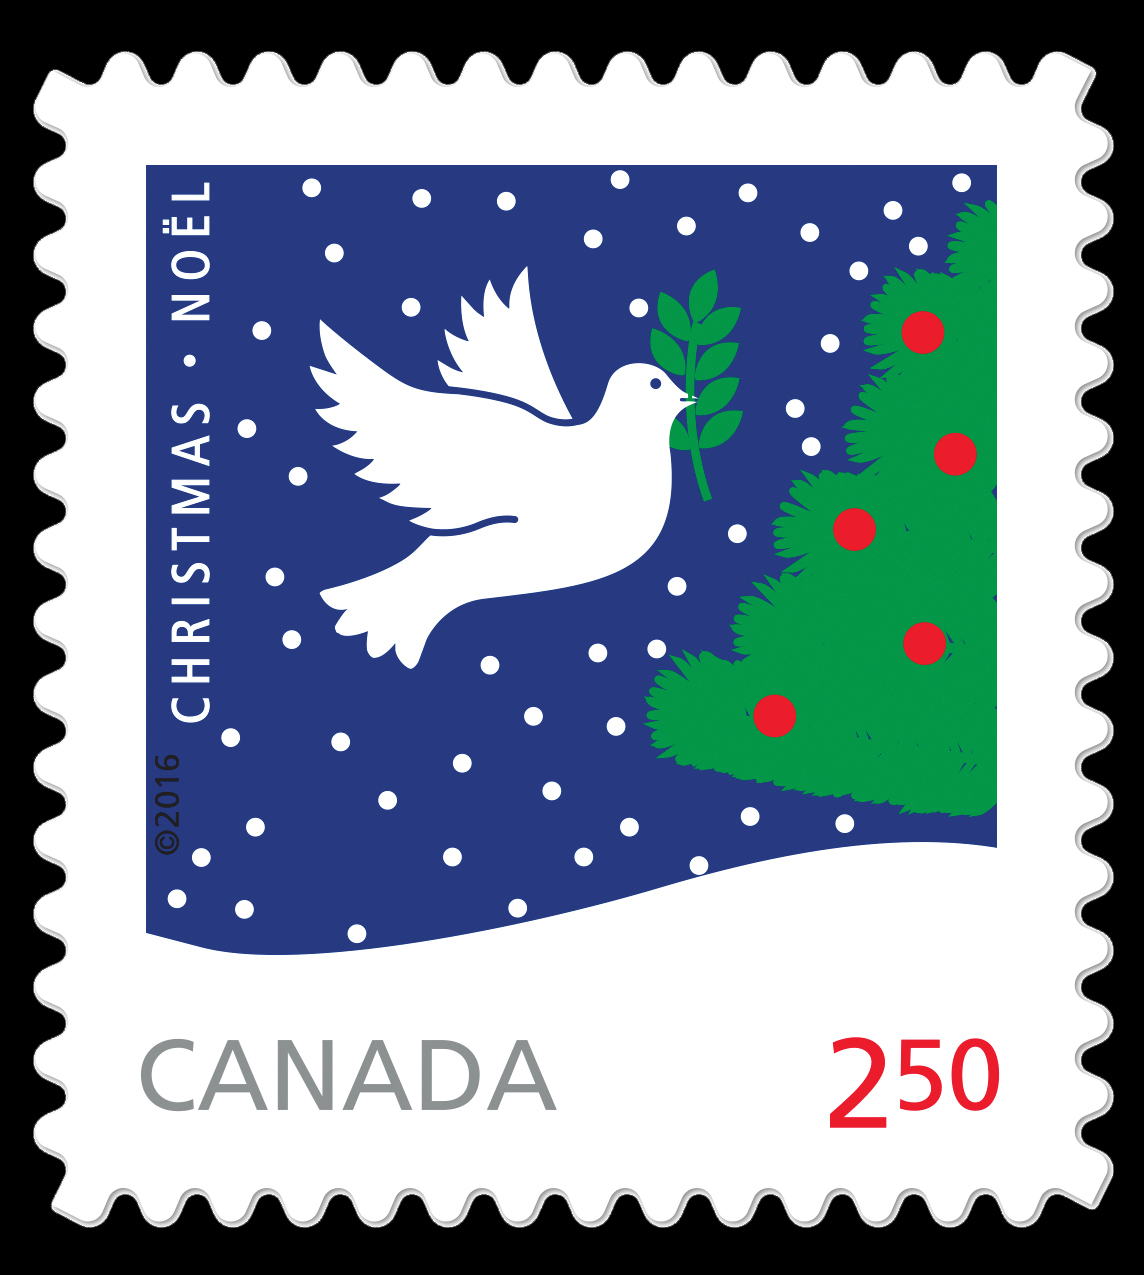 Rolf Harder's Dove and Christmas Tree Canada Postage Stamp | Christmas 2016